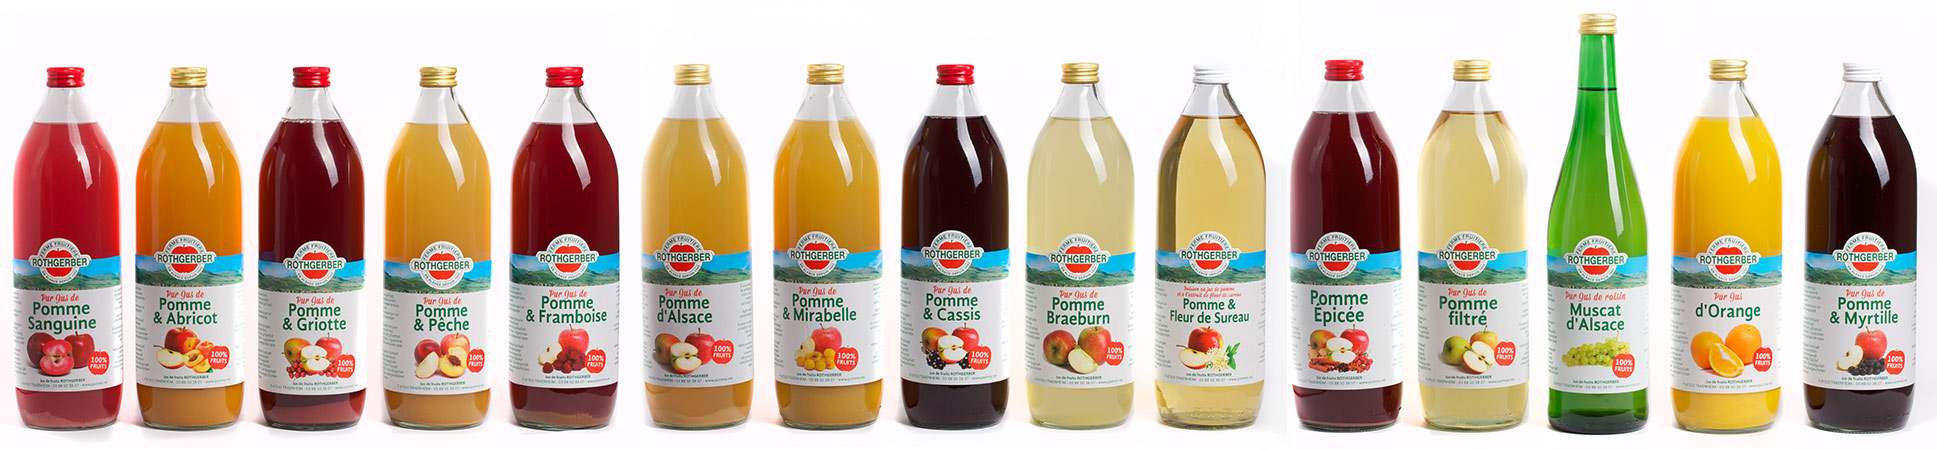 Bouteilles-Jus-Rothgerber